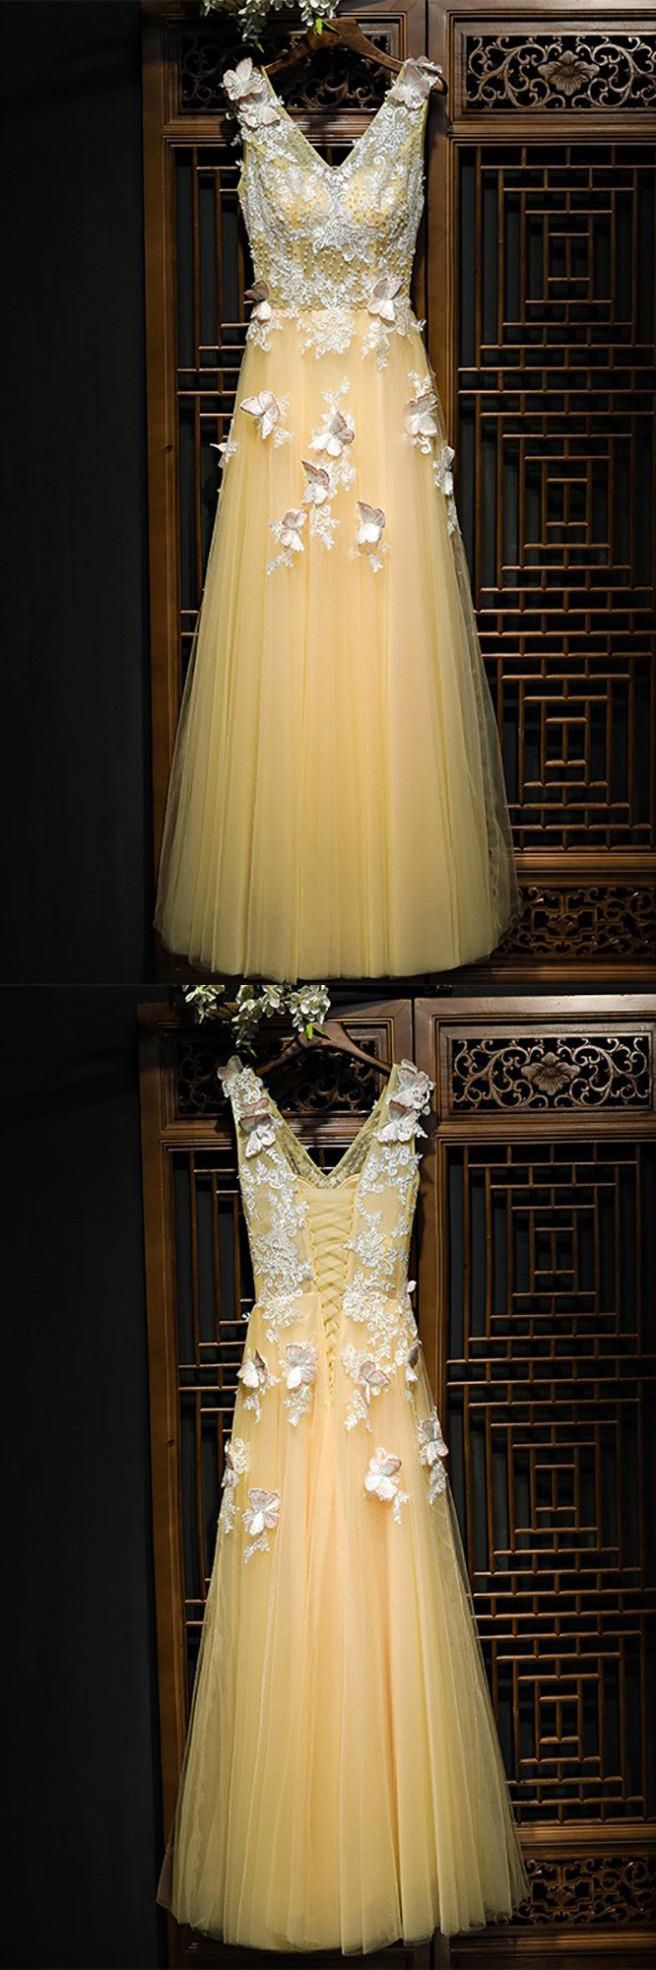 Plus Size Yellow Tulle Long Prom Dresses 2018 A Line Beaded Fashion Evening Party Gowns